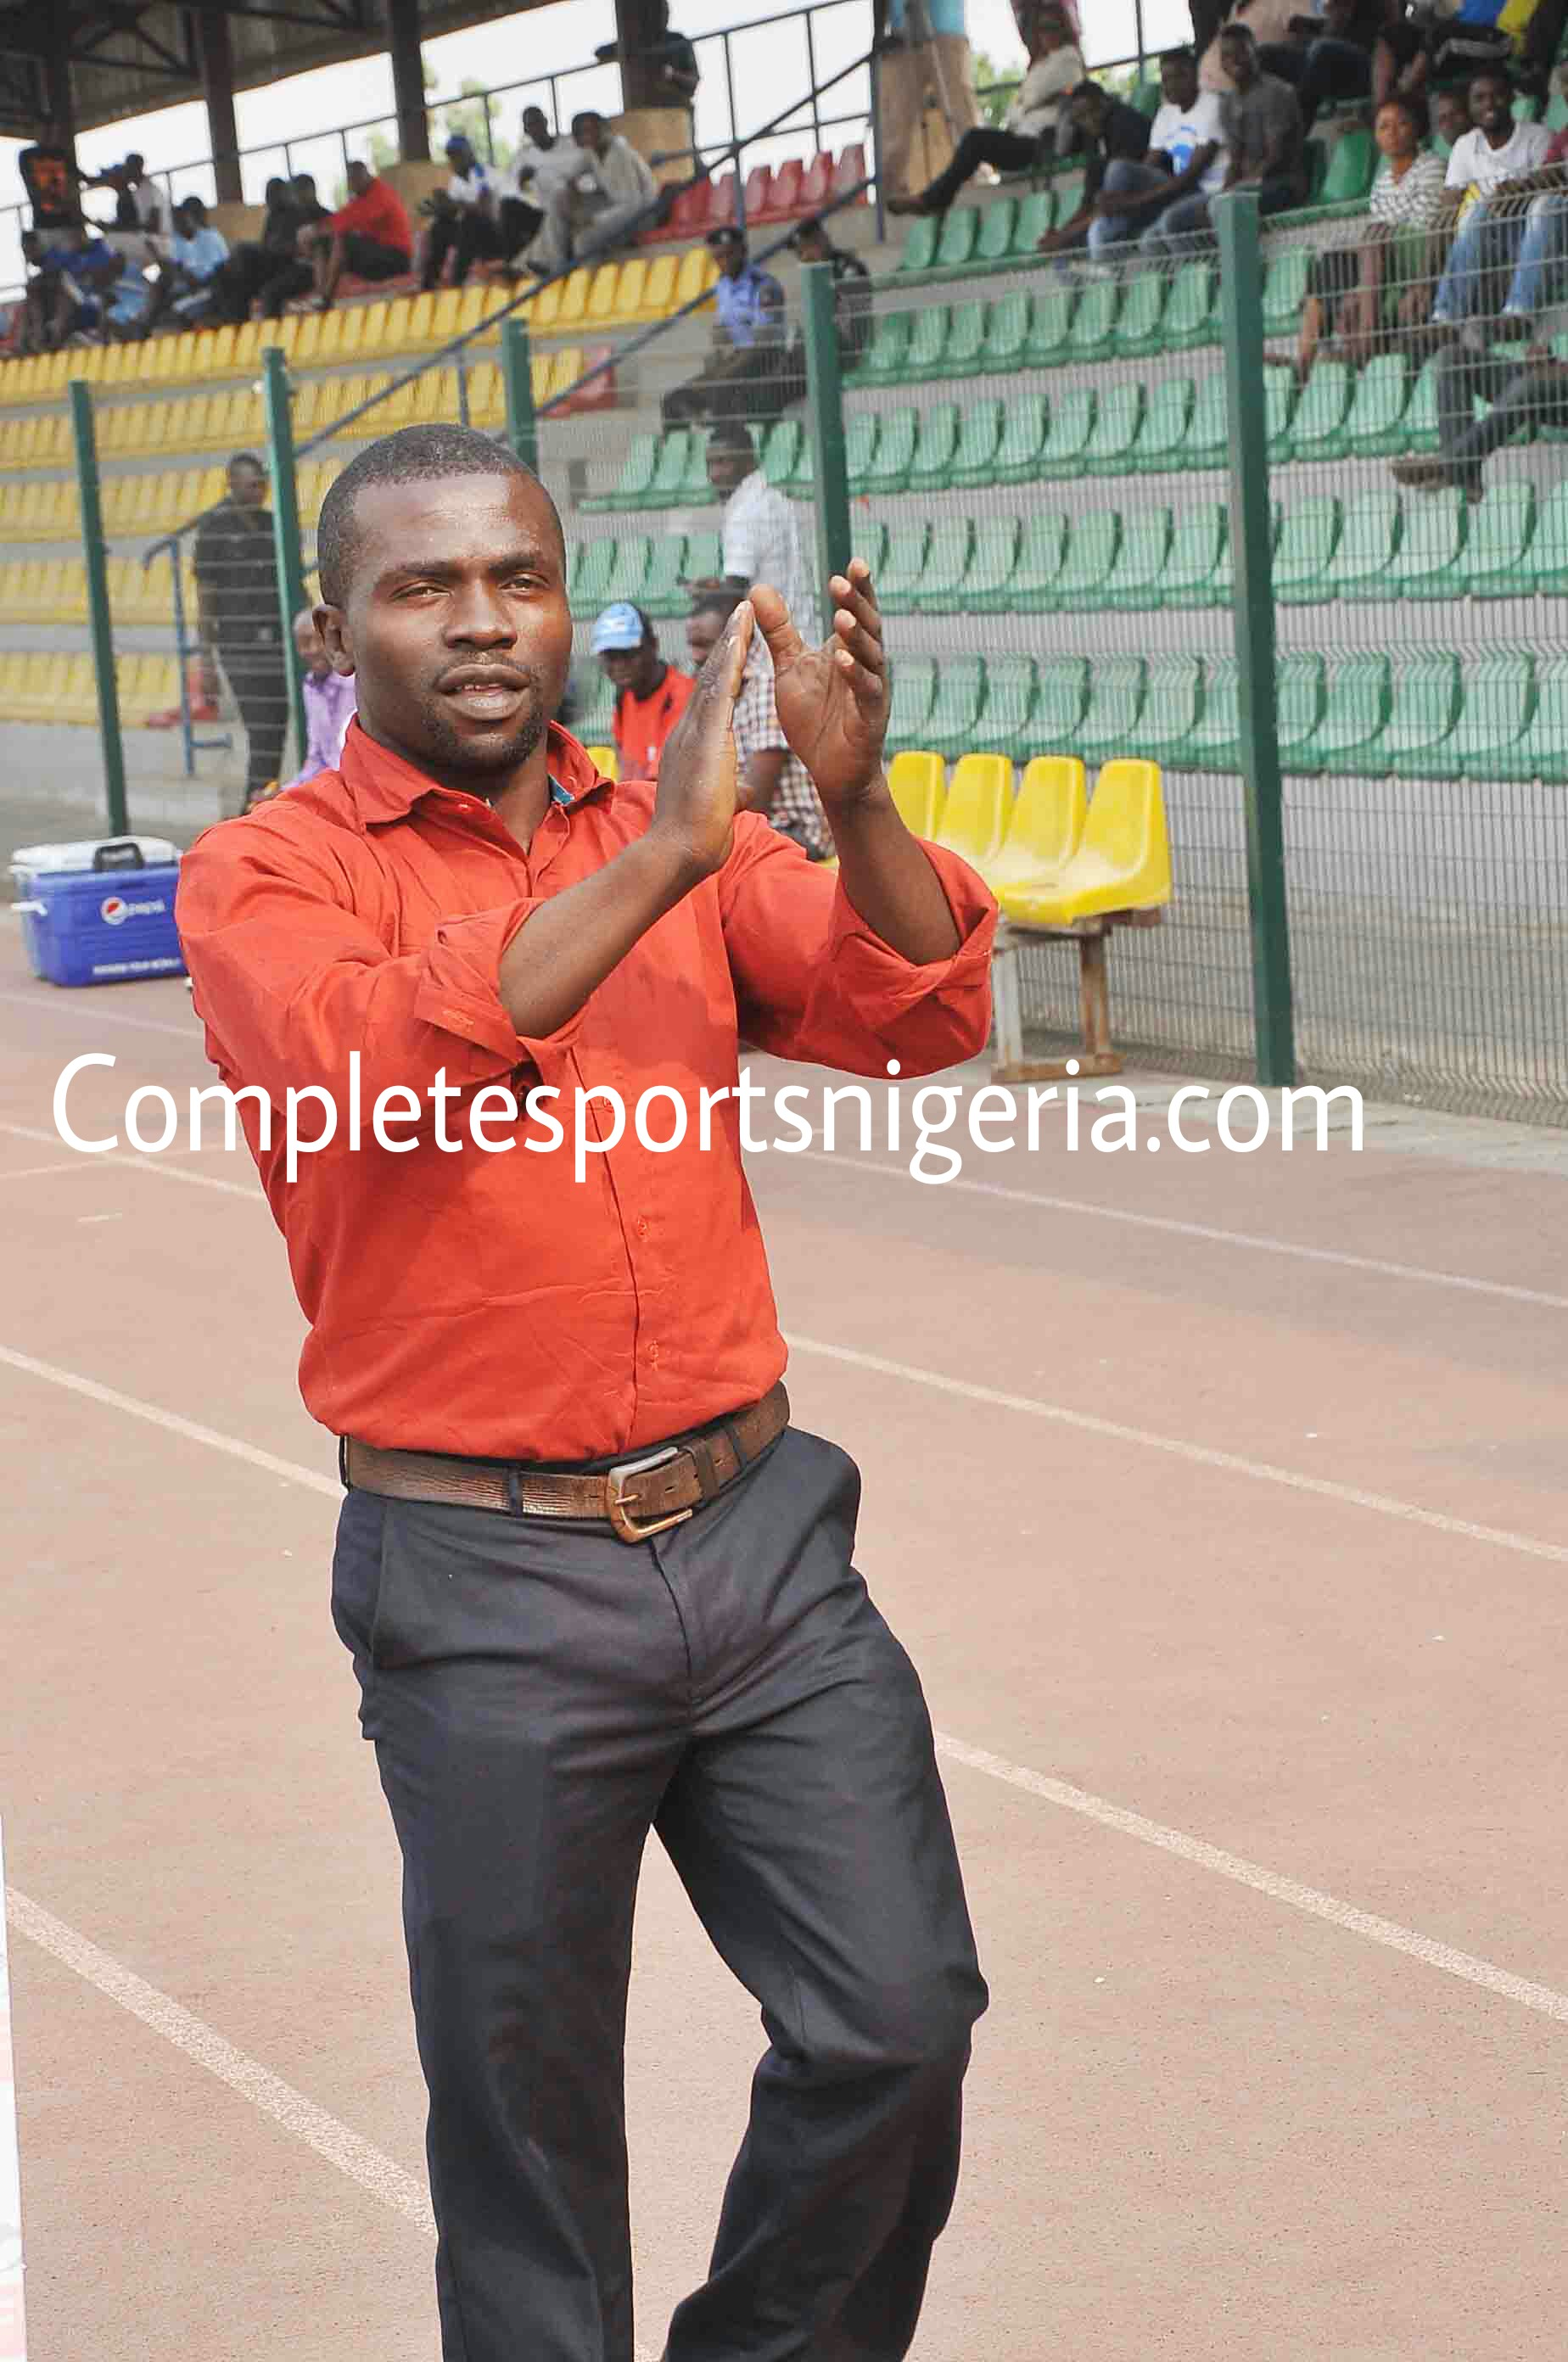 NPFL: MFM Boss Ilechukwu Confident Of Away Win Vs Remo Stars